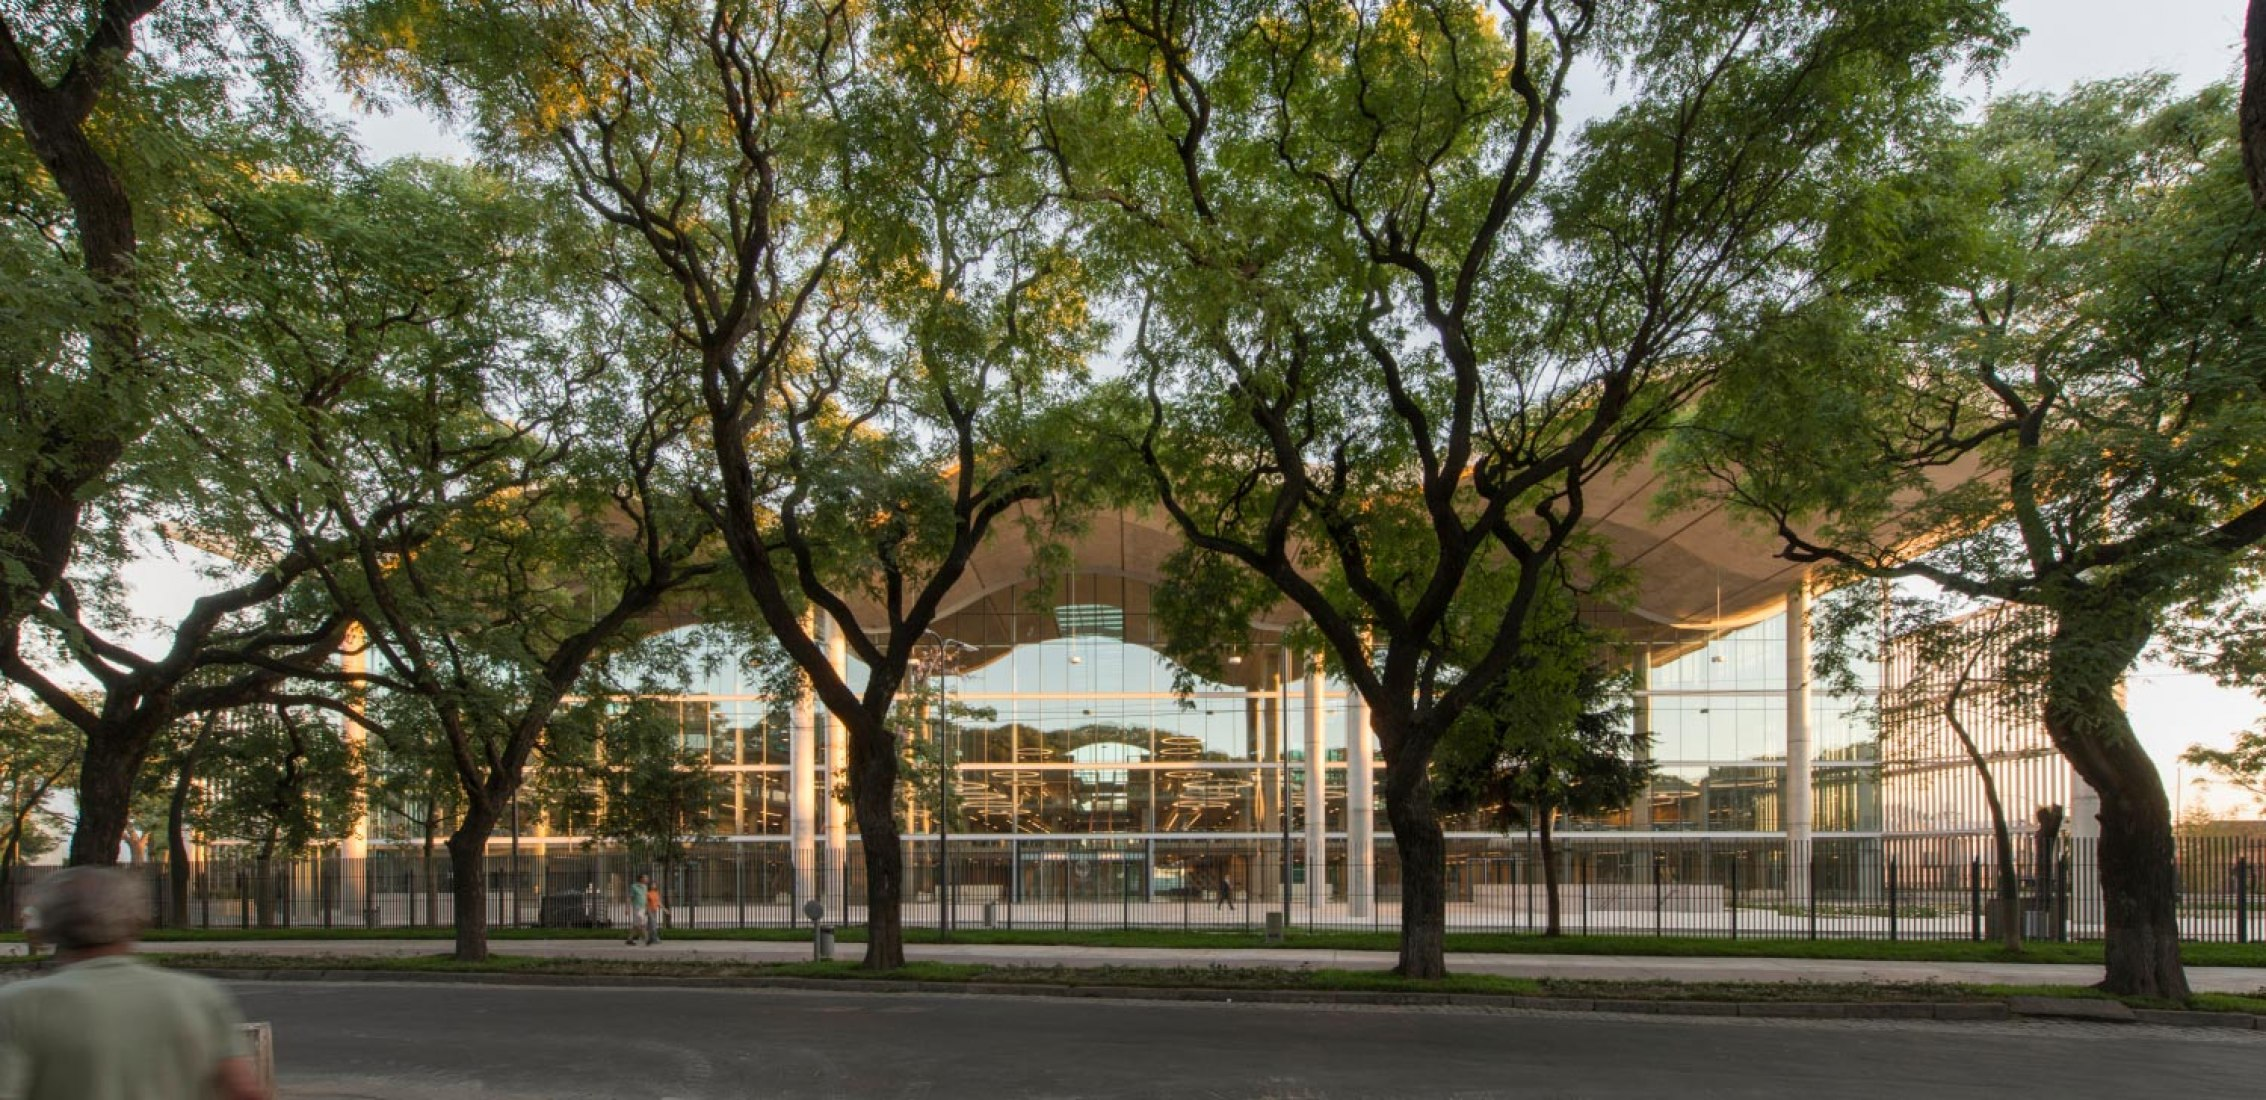 New City Hall in Buenos Aires by Foster + Partners. Image courtesy of Foster + Partners.